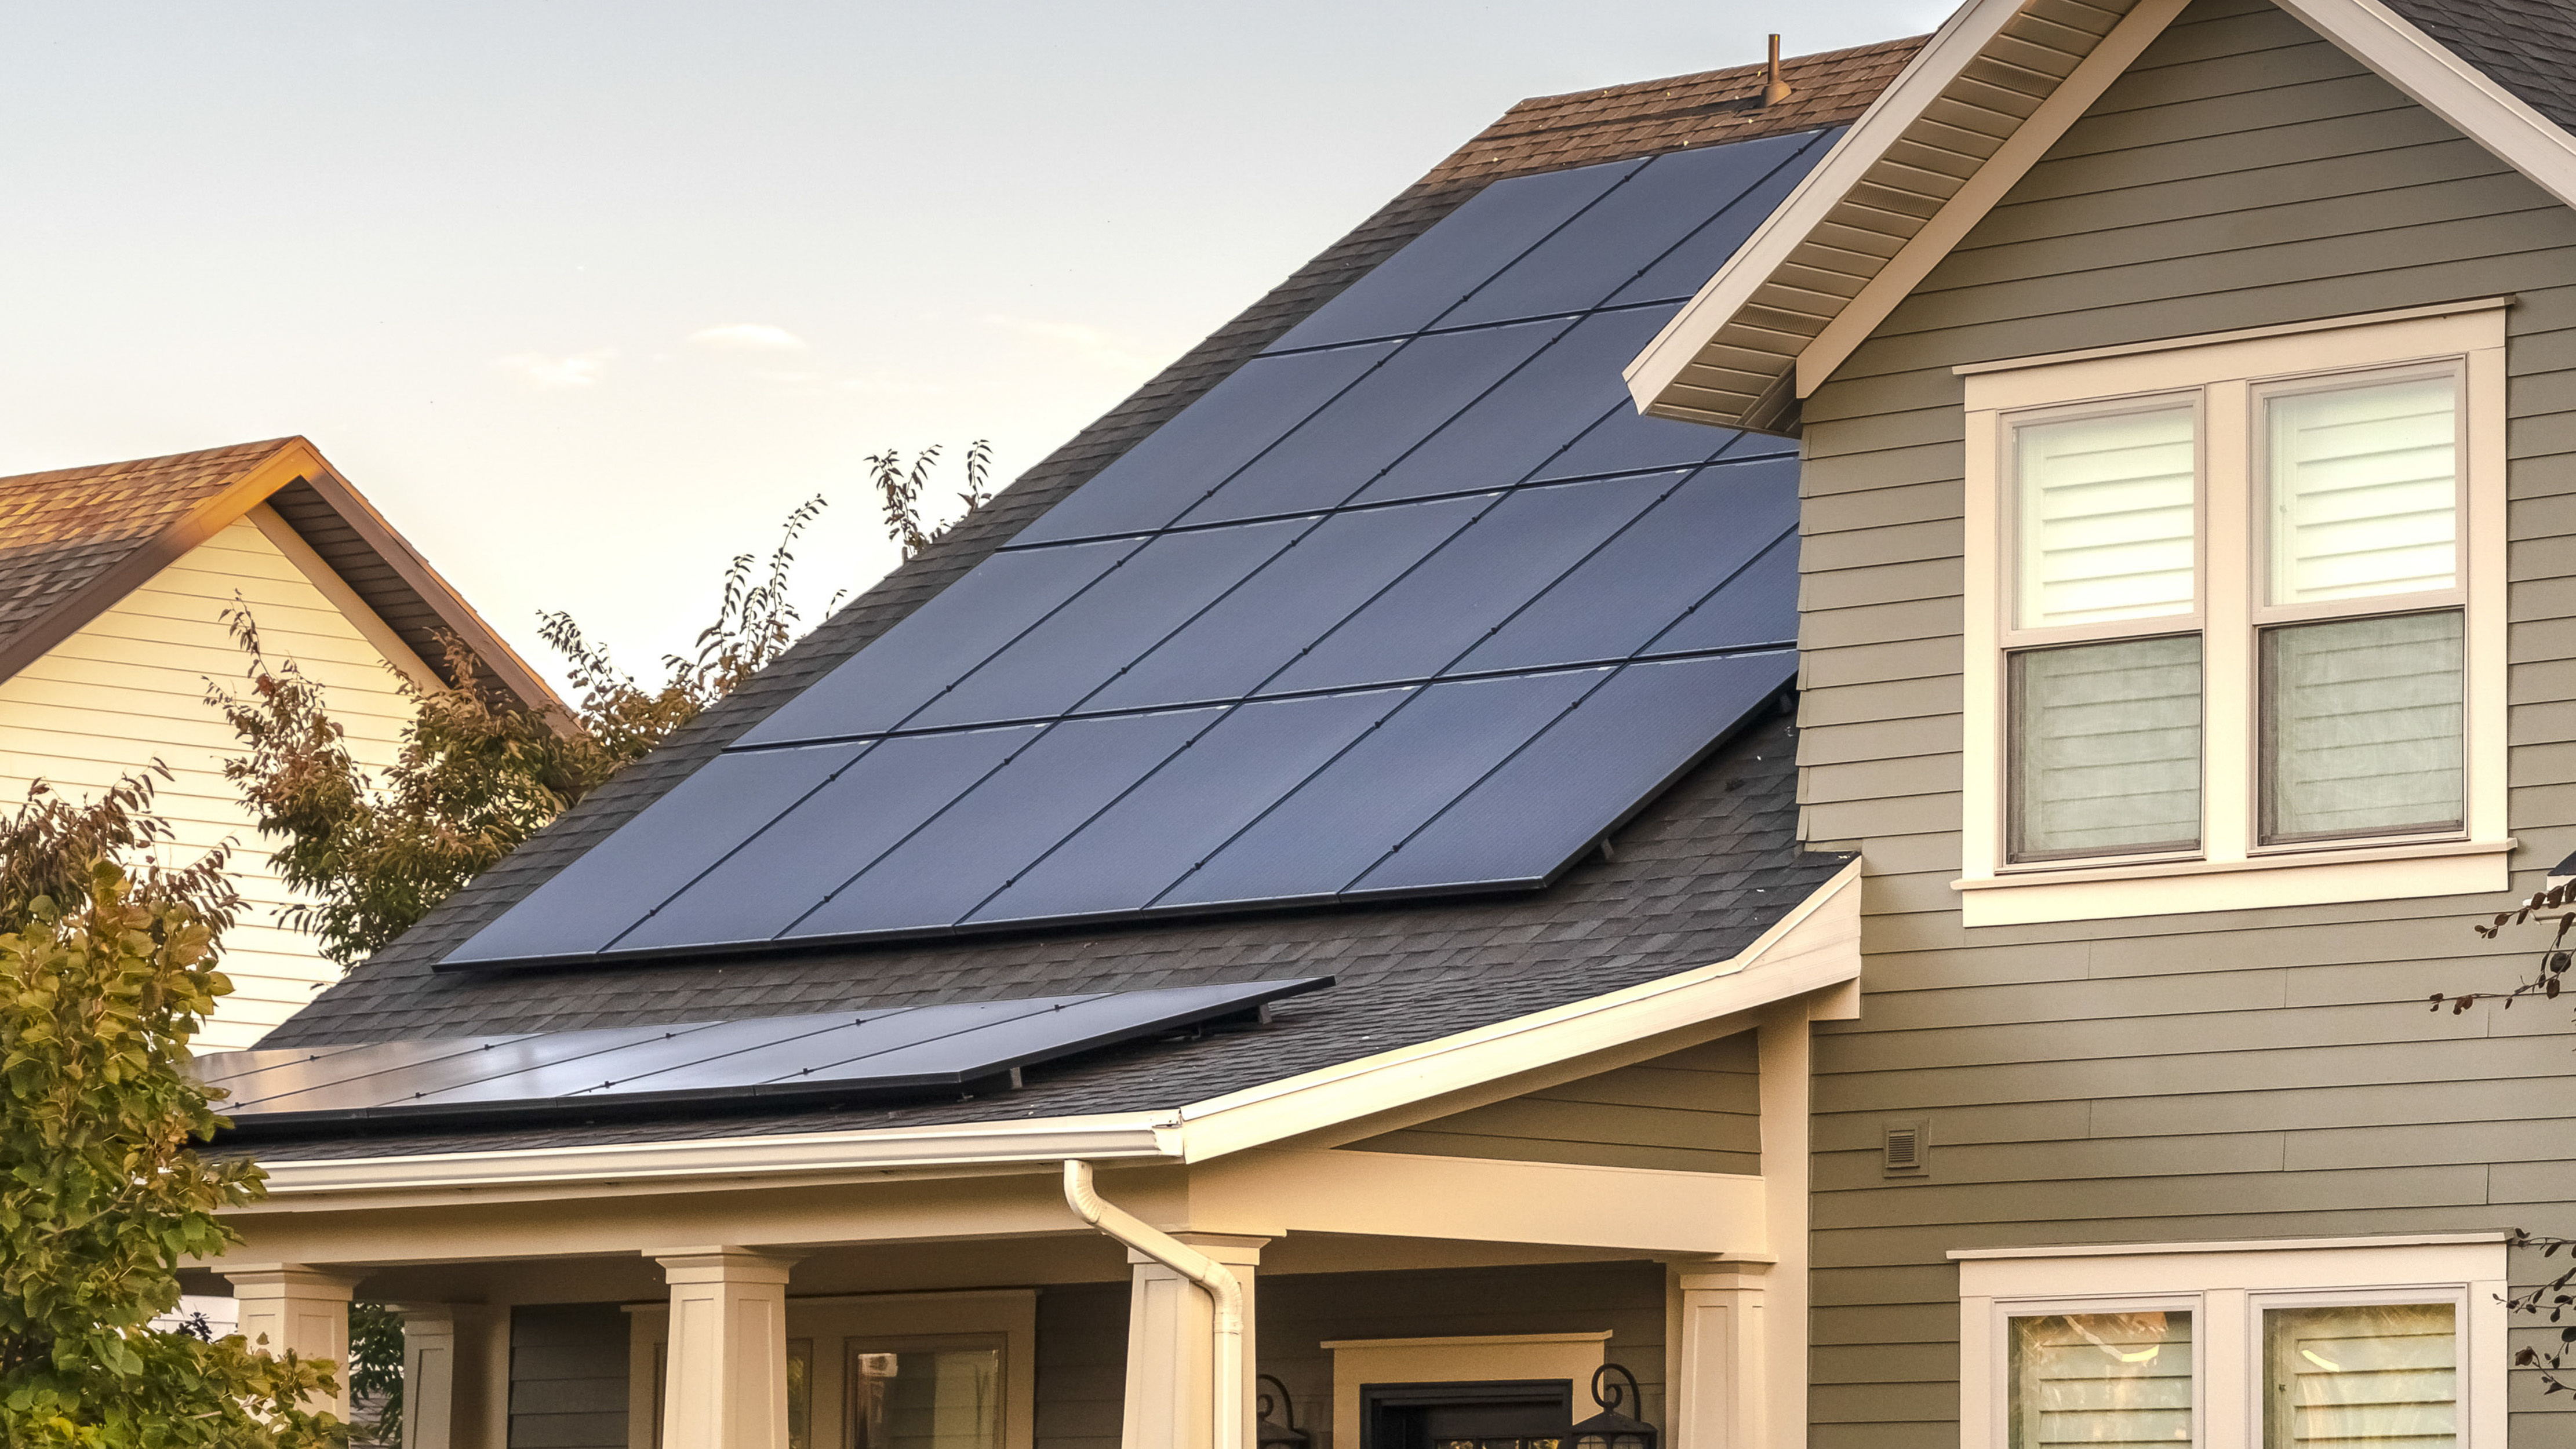 Panorama frame Solar photovoltaic panels on a house roof